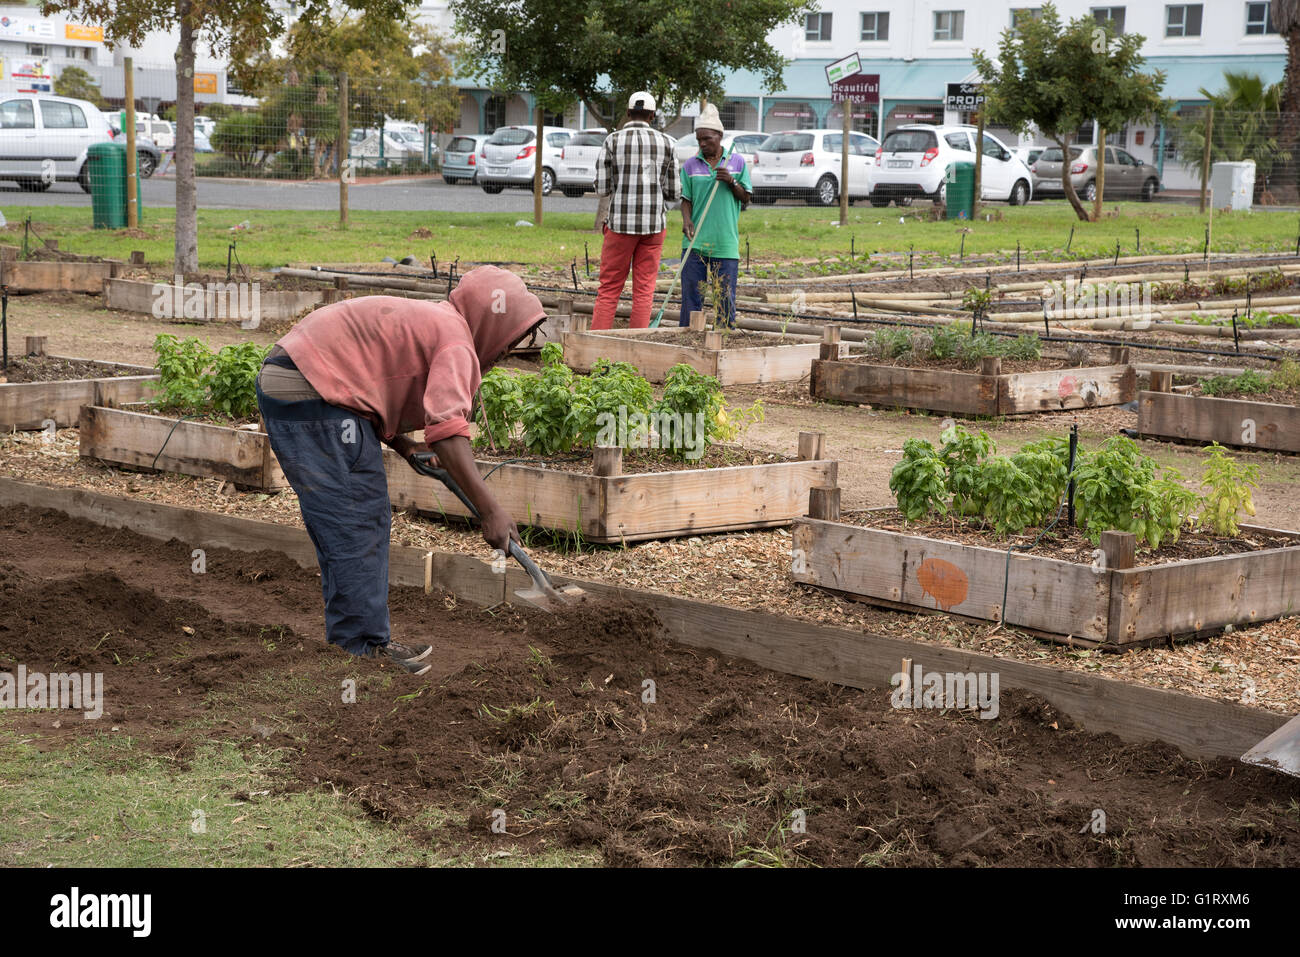 SOMERSET WEST WESTERN CAPE SOUTH AFRICA  Volunteers working in a community garden producing vegetables and salad produce Stock Photo